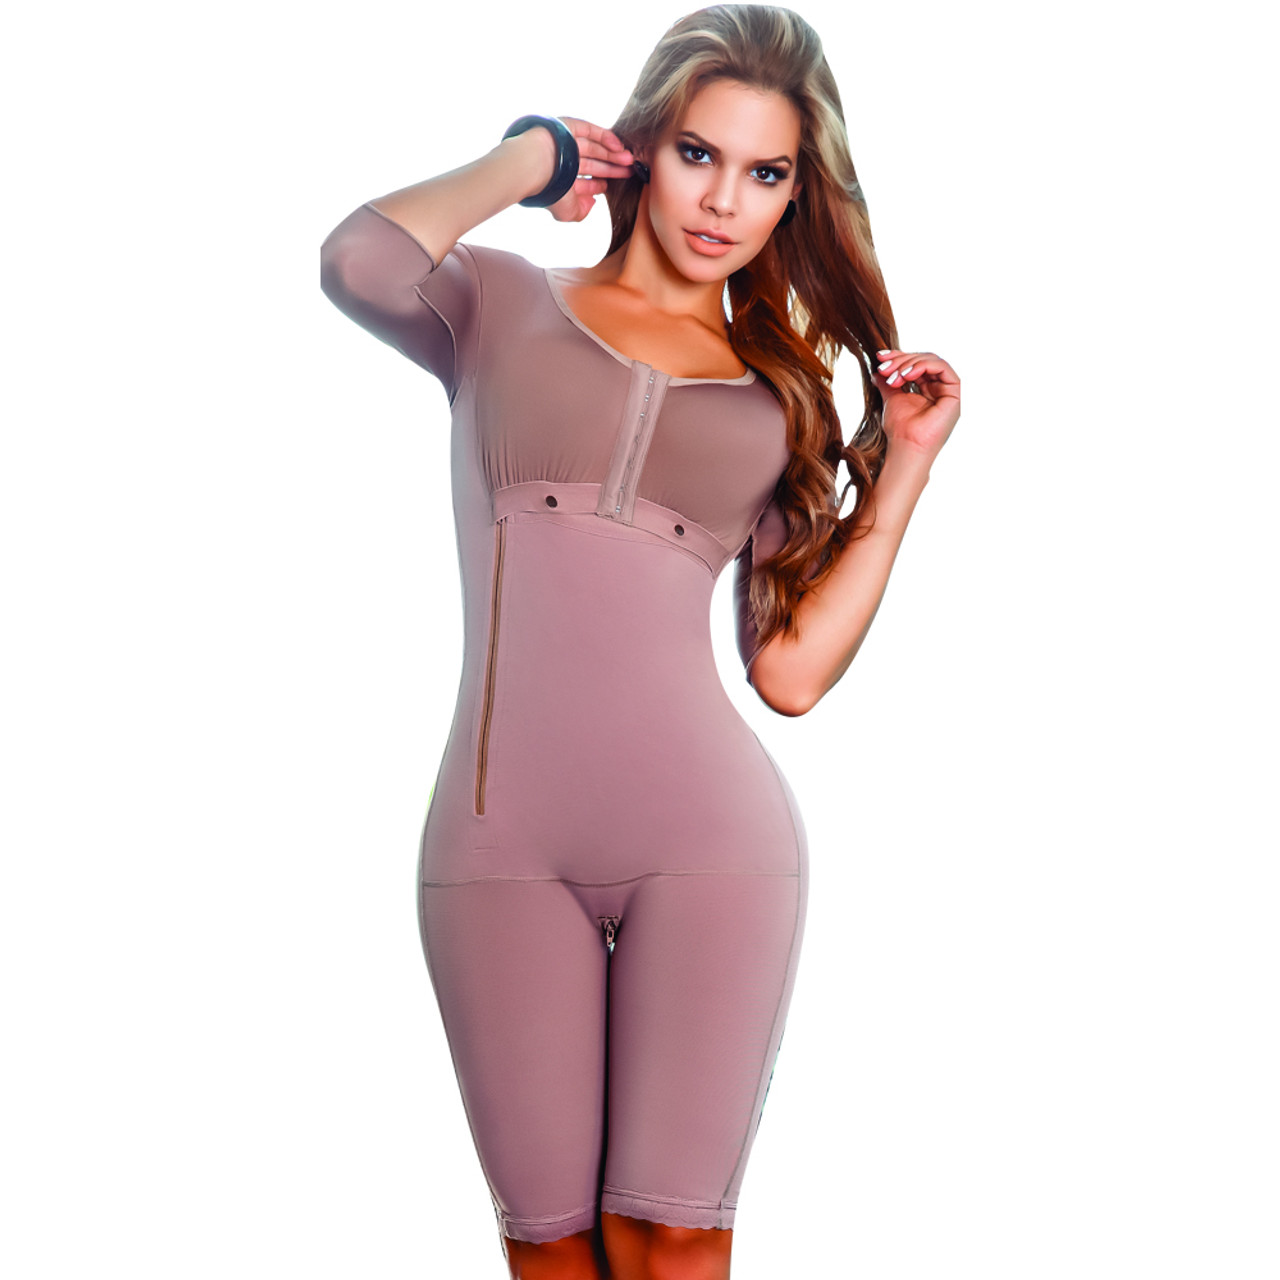 49c6492197 Best Latex Waist Cinchers you will ever find. Our women s shapewear slim  your waist